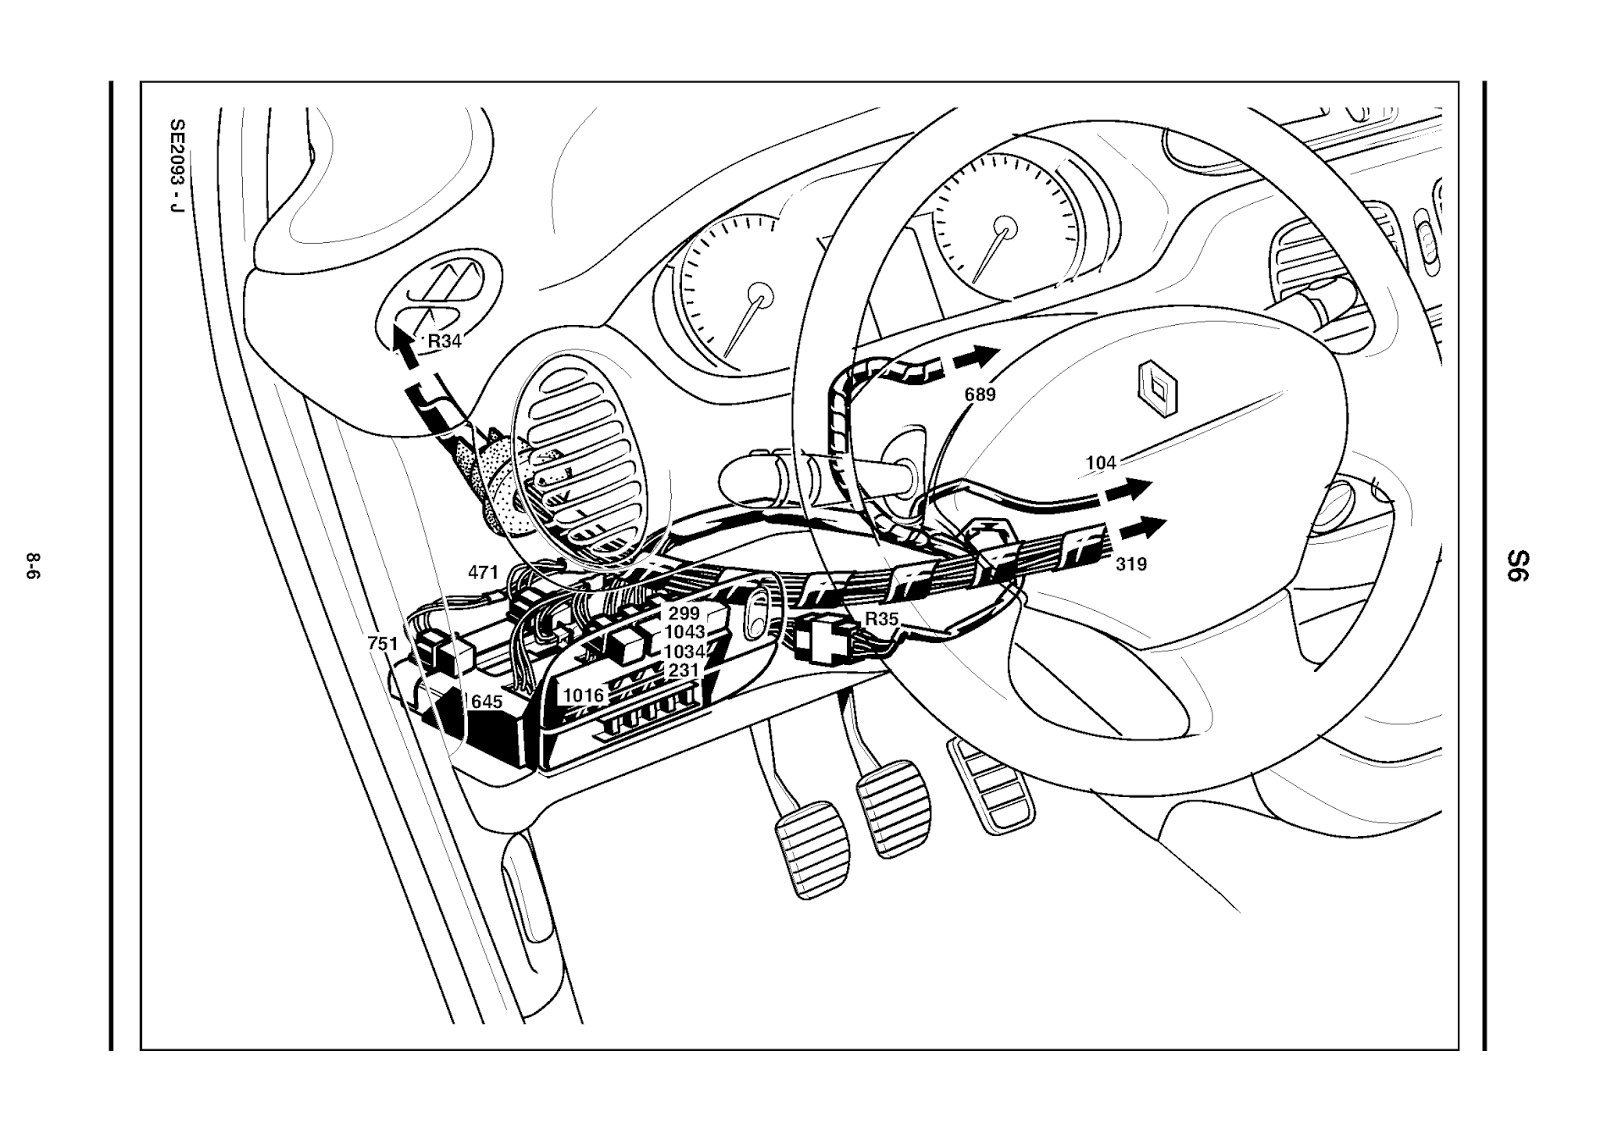 Kia Spectra Rear Brake Replacement further Honda Del Sol Engine Diagram also Diagram Of Serpentine Belt For 2001 Isuzu Rodeo further 96 Kia Sportage Engine Diagram together with 1998 Isuzu Hombre Parts Catalog. on 1998 kia sephia problems